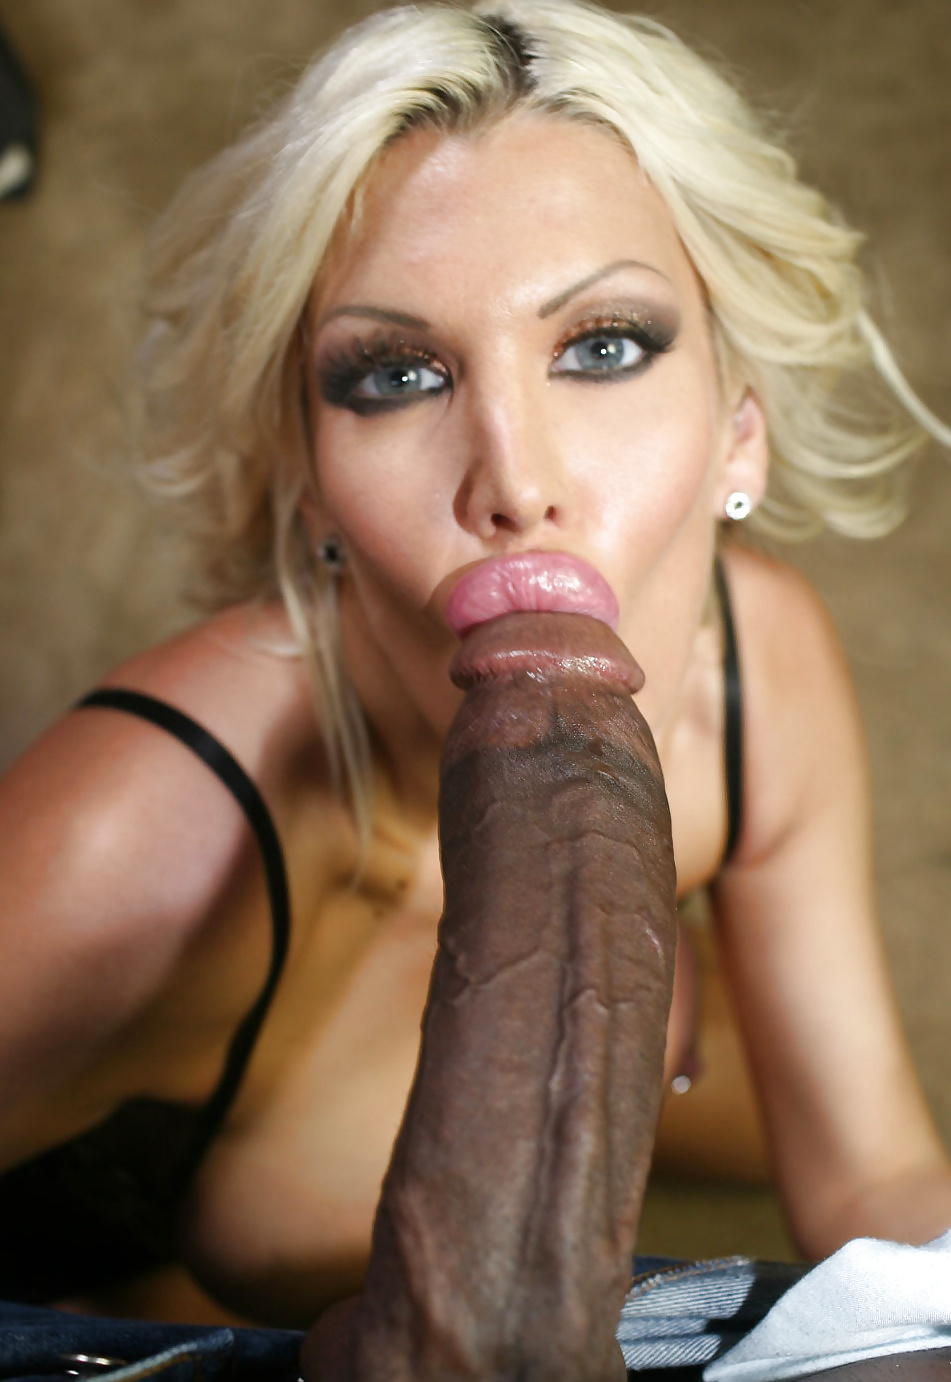 she s going to tit fuck me he thought